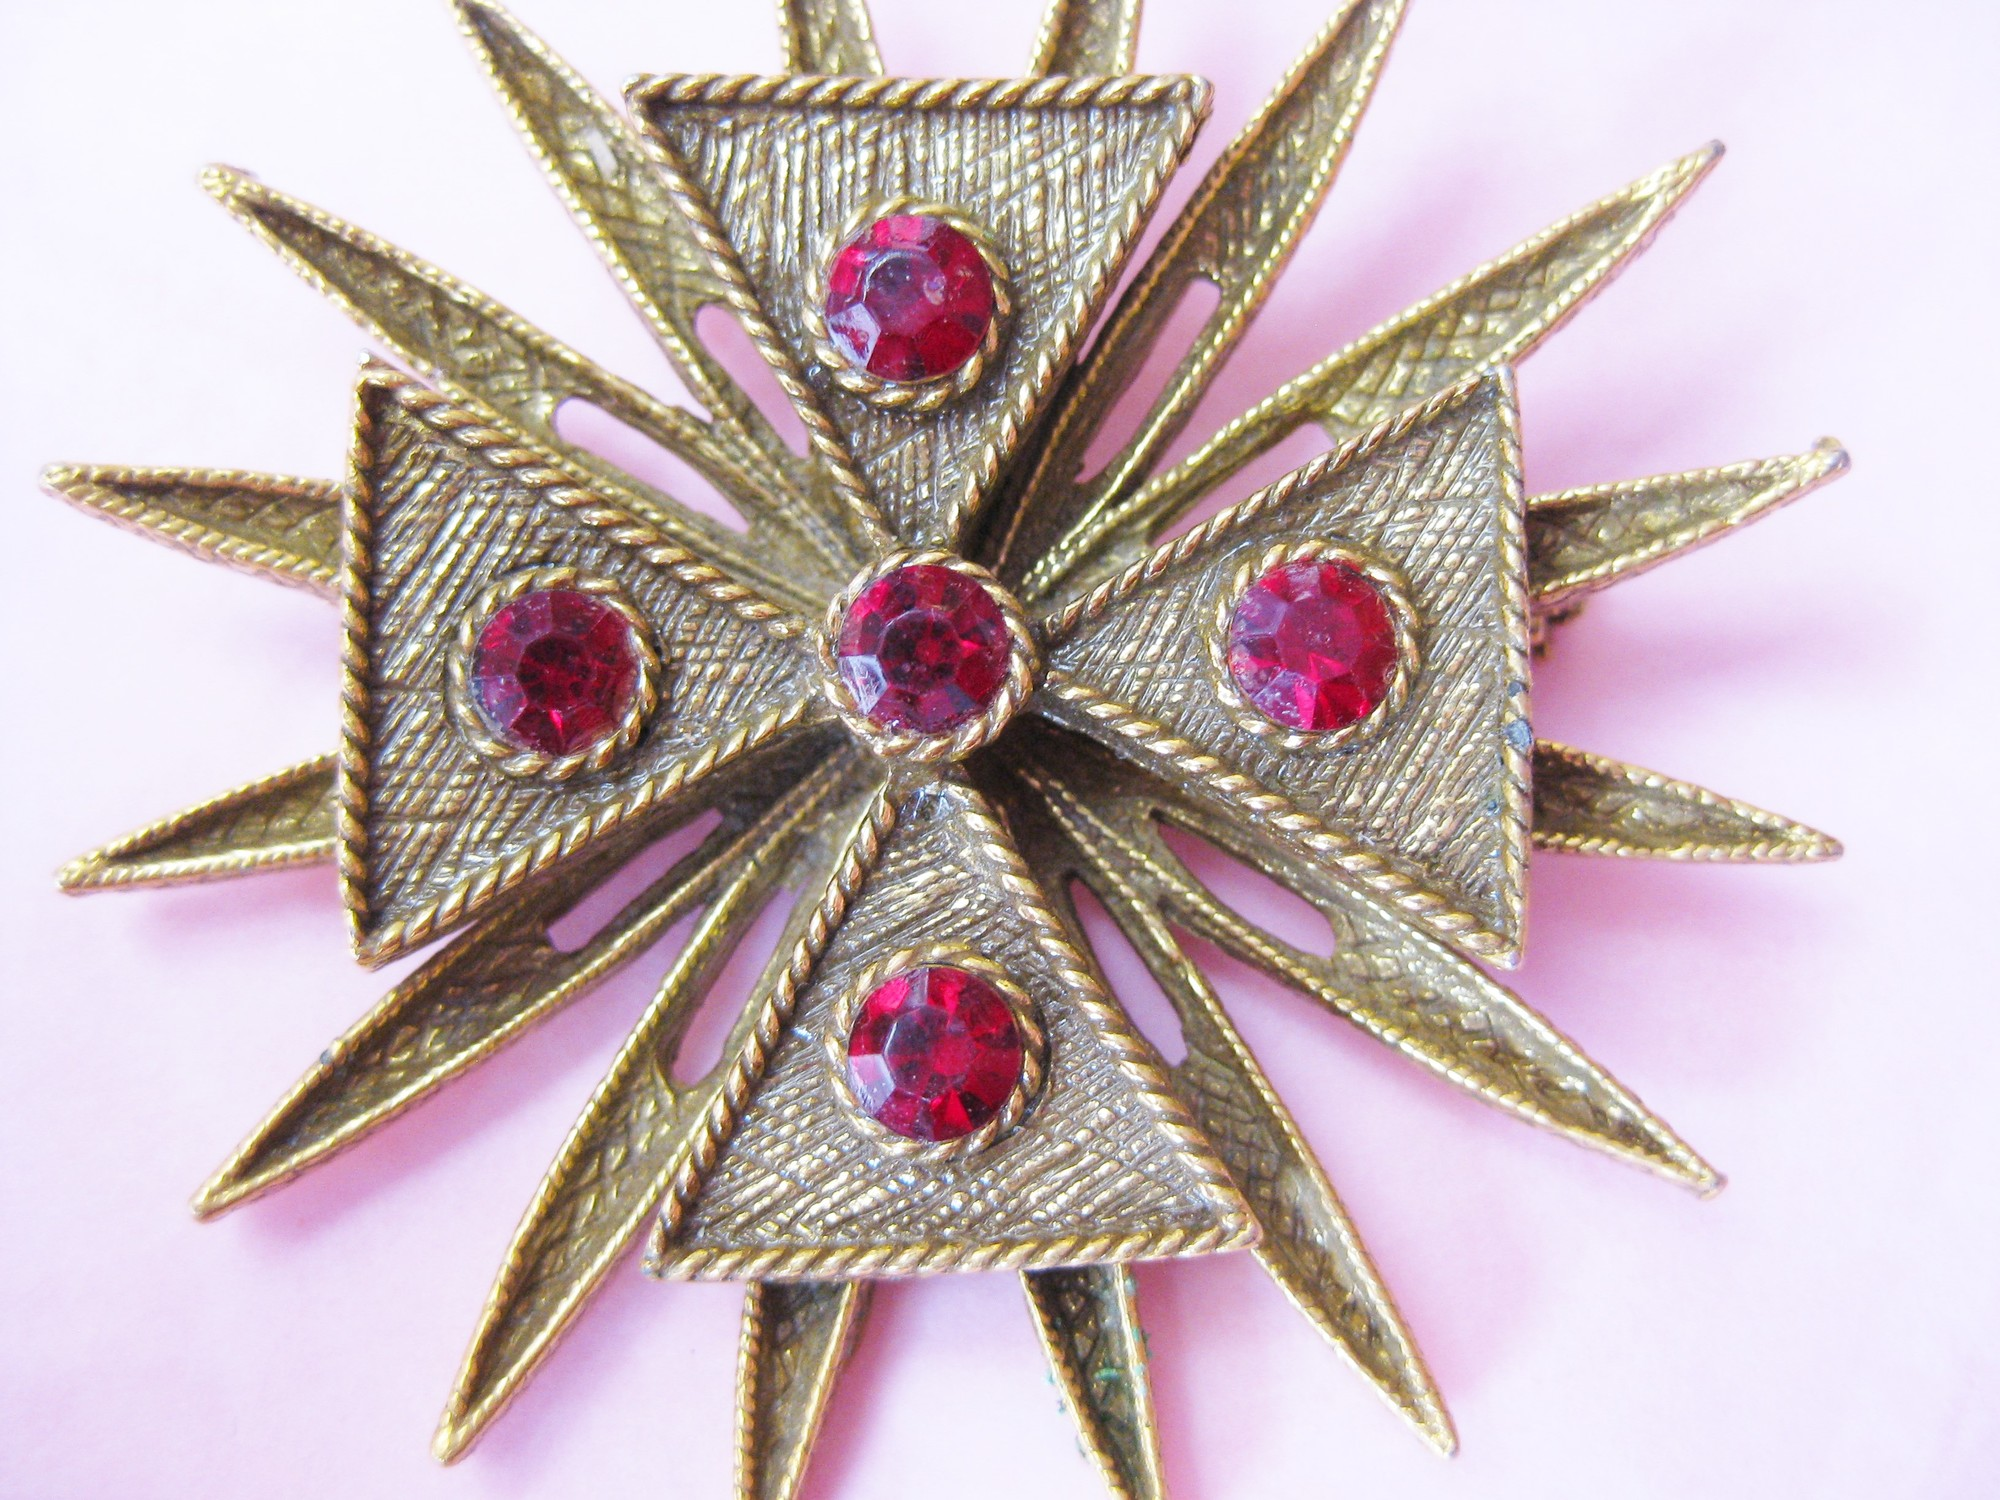 Stunning Howard Benedikt NY Maltese cross<br /> Classic Maltese cross design brooch. Textured gold tone metal, rhinestones<br /> <br /> Excellent condition with a touch of corrosion on the bar in back<br /> <br /> I found this delicious artilce with history and beautiful photos of examples of Benedikt's work, including one that is almost identical to this piece.<br /> <br /> https://nasvete.com/howard-benedikt-vintage-costume-jewelry/<br /> <br /> <br /> Thank you for looking!<br /> #18018